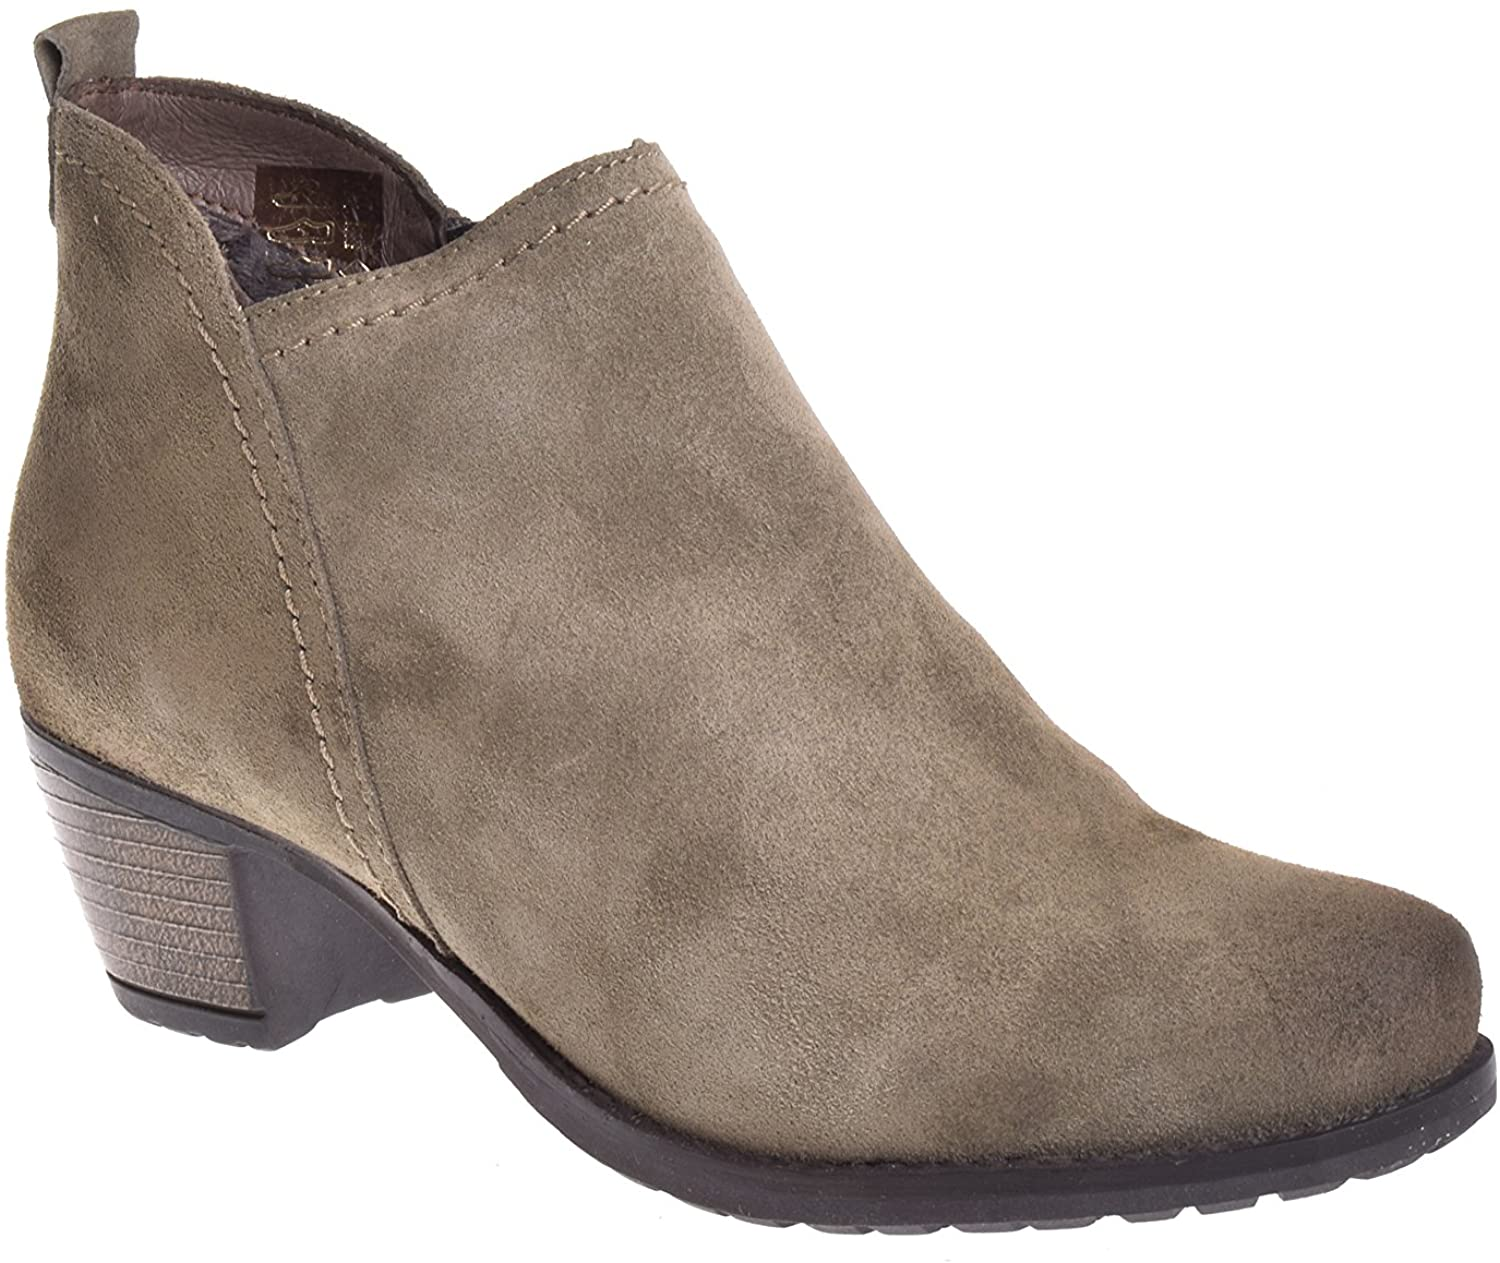 Eric Michael Women's Michelle Boot